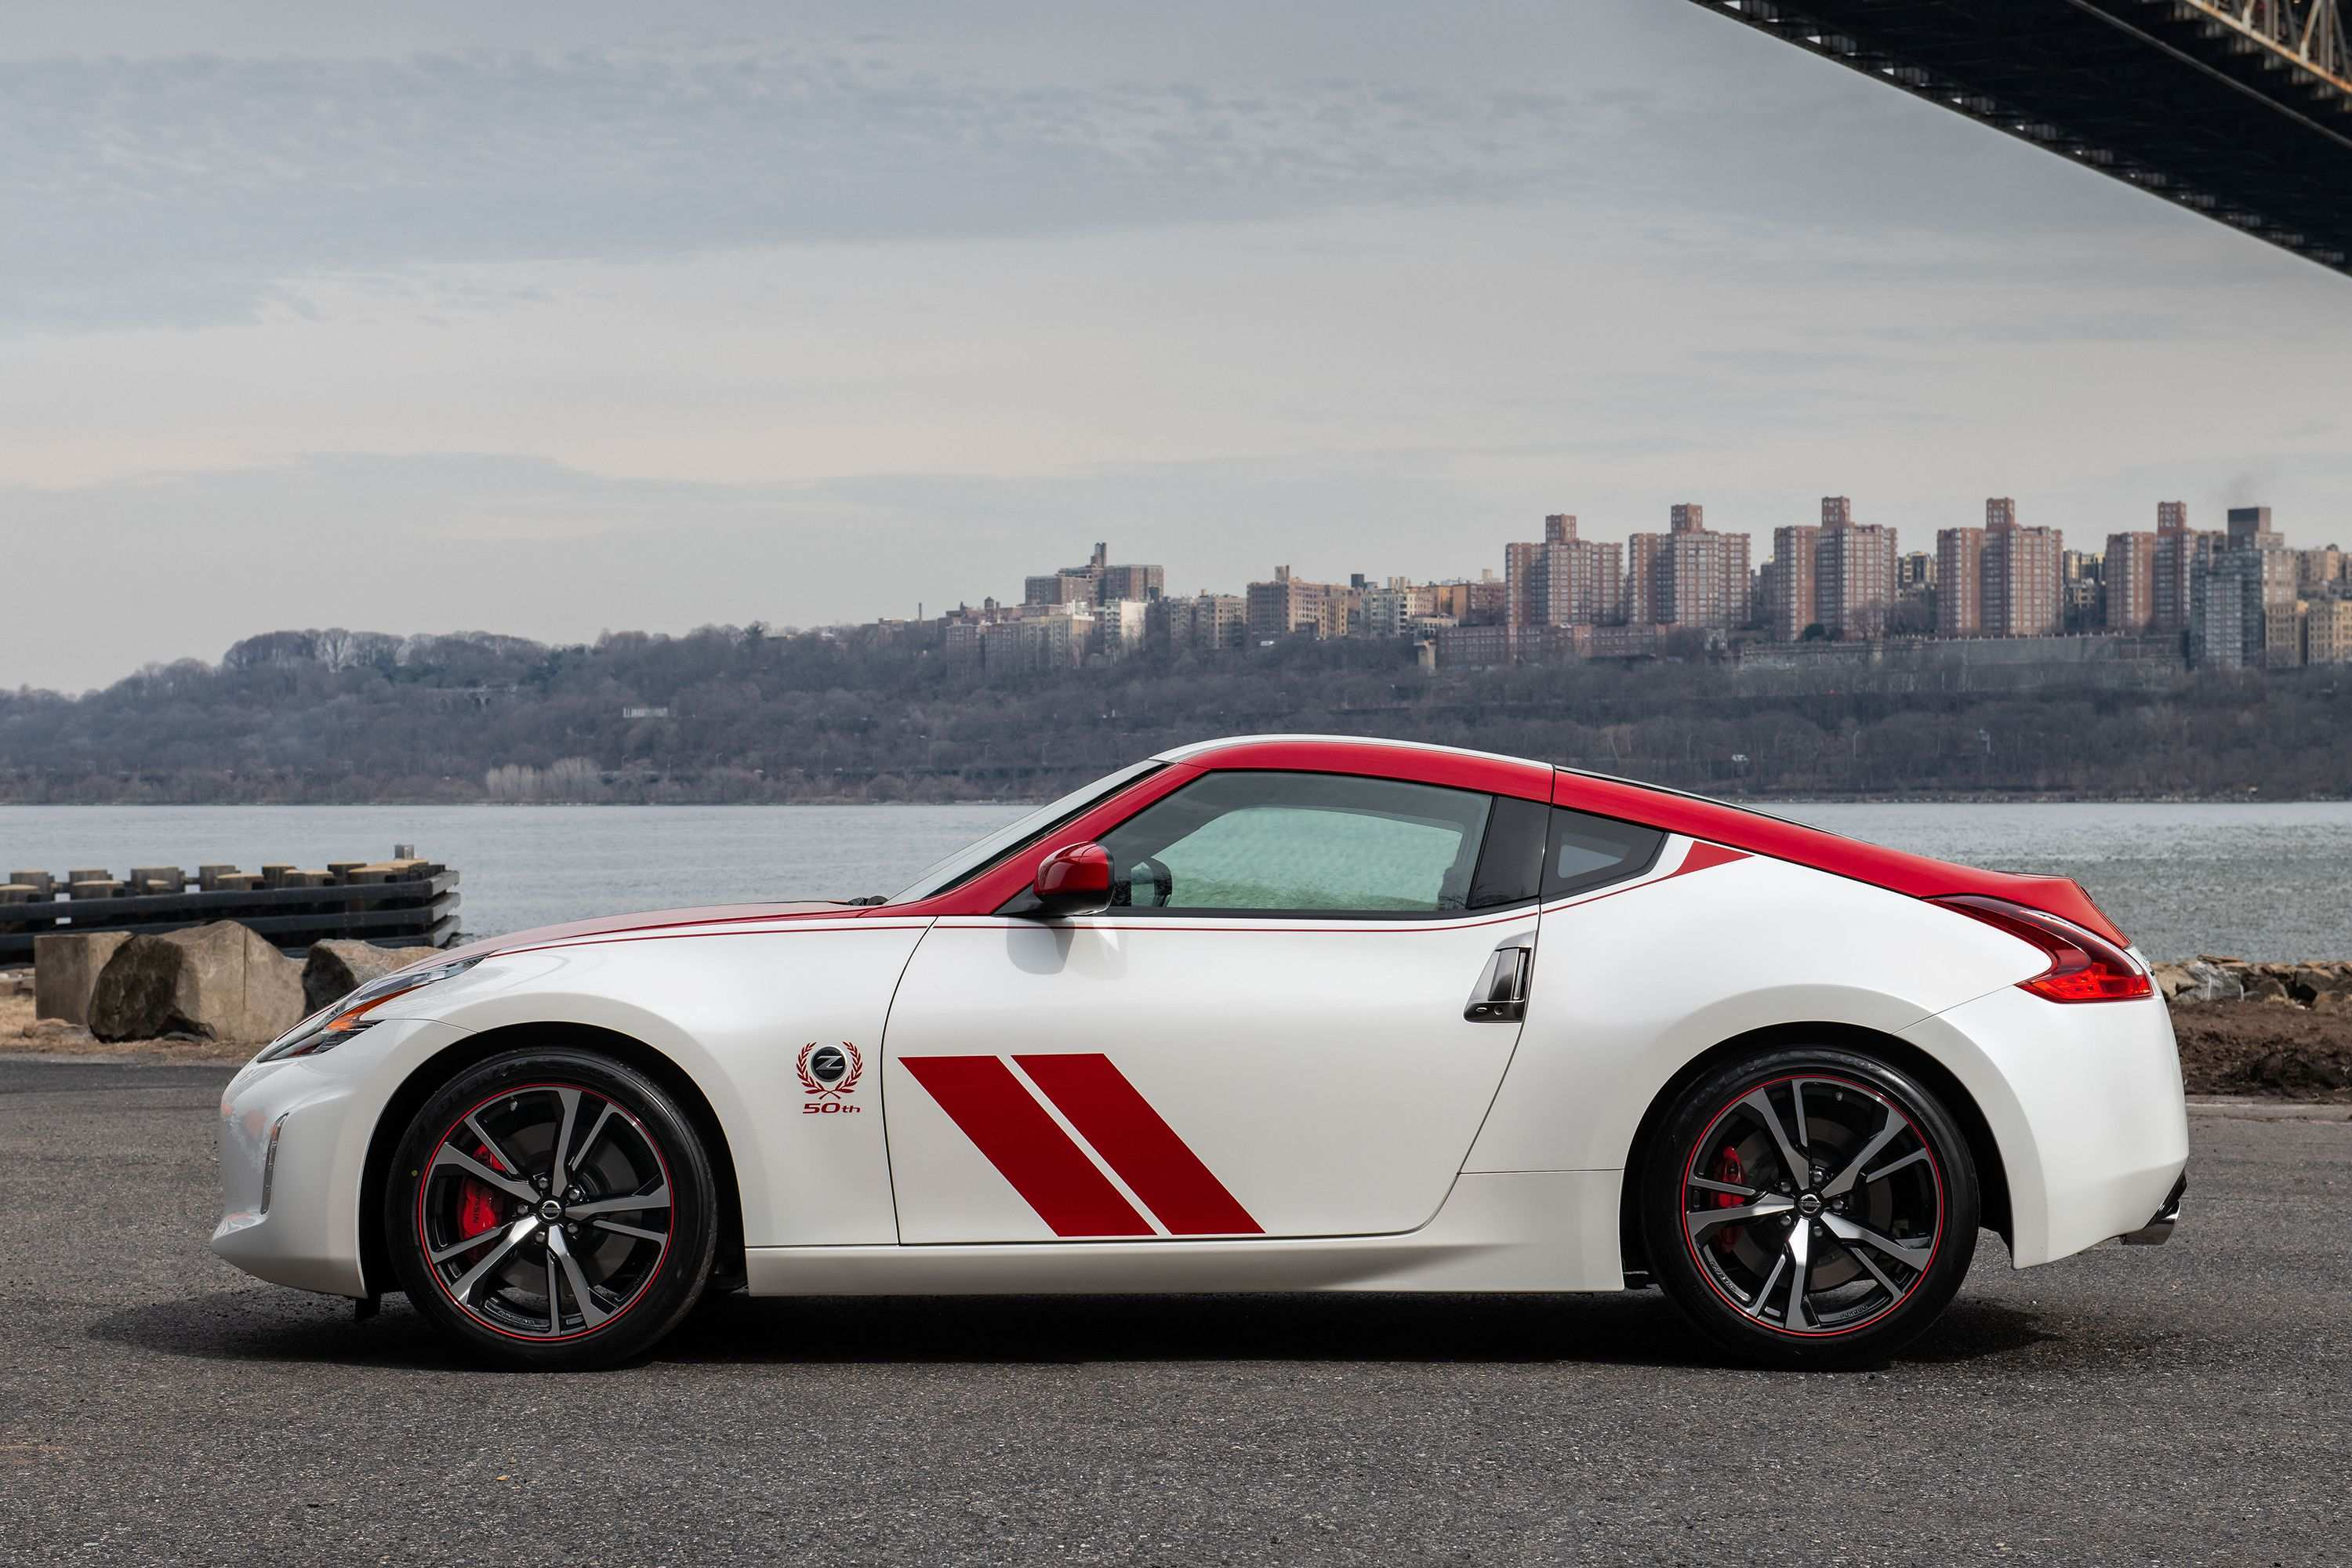 64 Best Nissan Z Car 2020 Review And Release Date